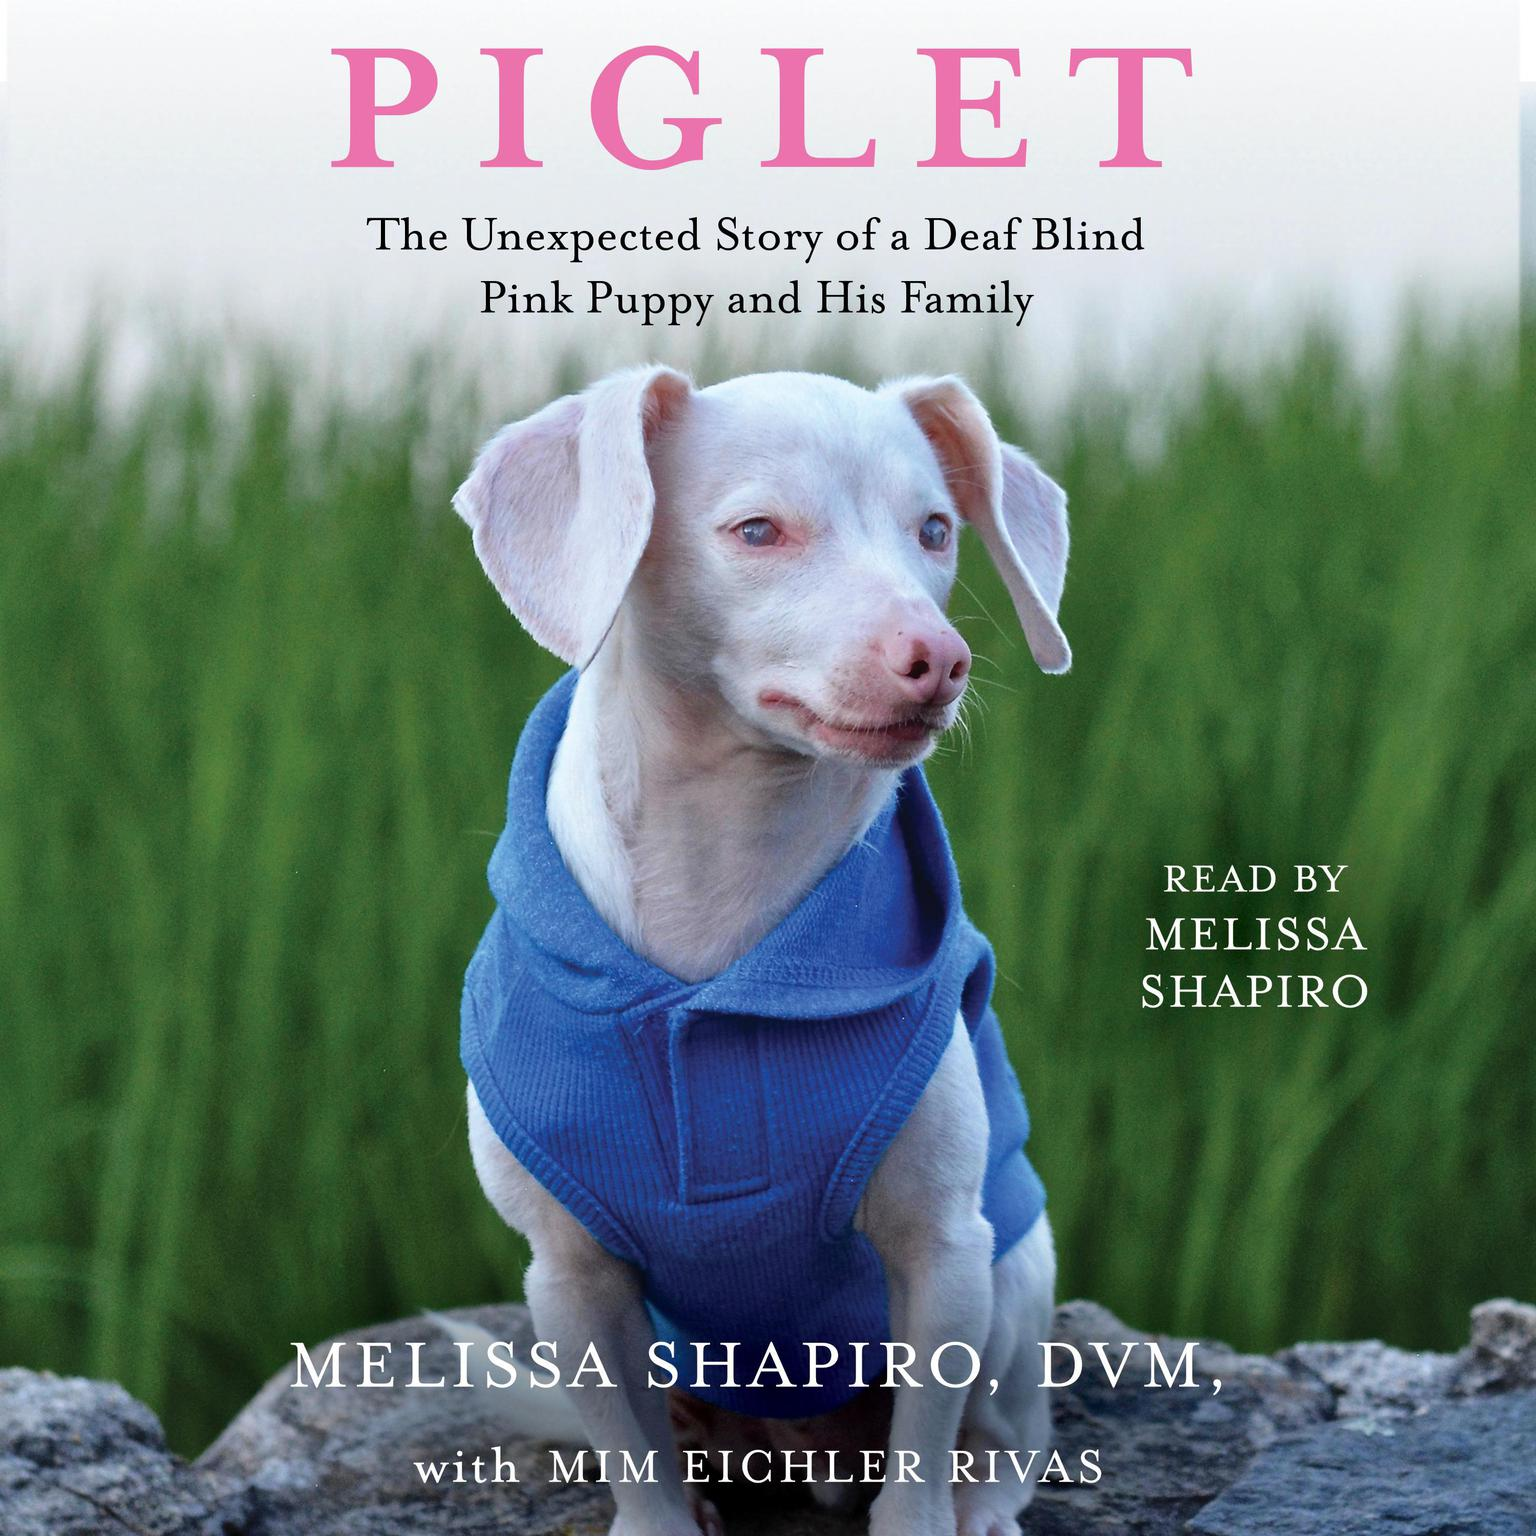 Piglet: The Unexpected Story of a Deaf, Blind, Pink Puppy and His Family Audiobook, by Melissa Shapiro